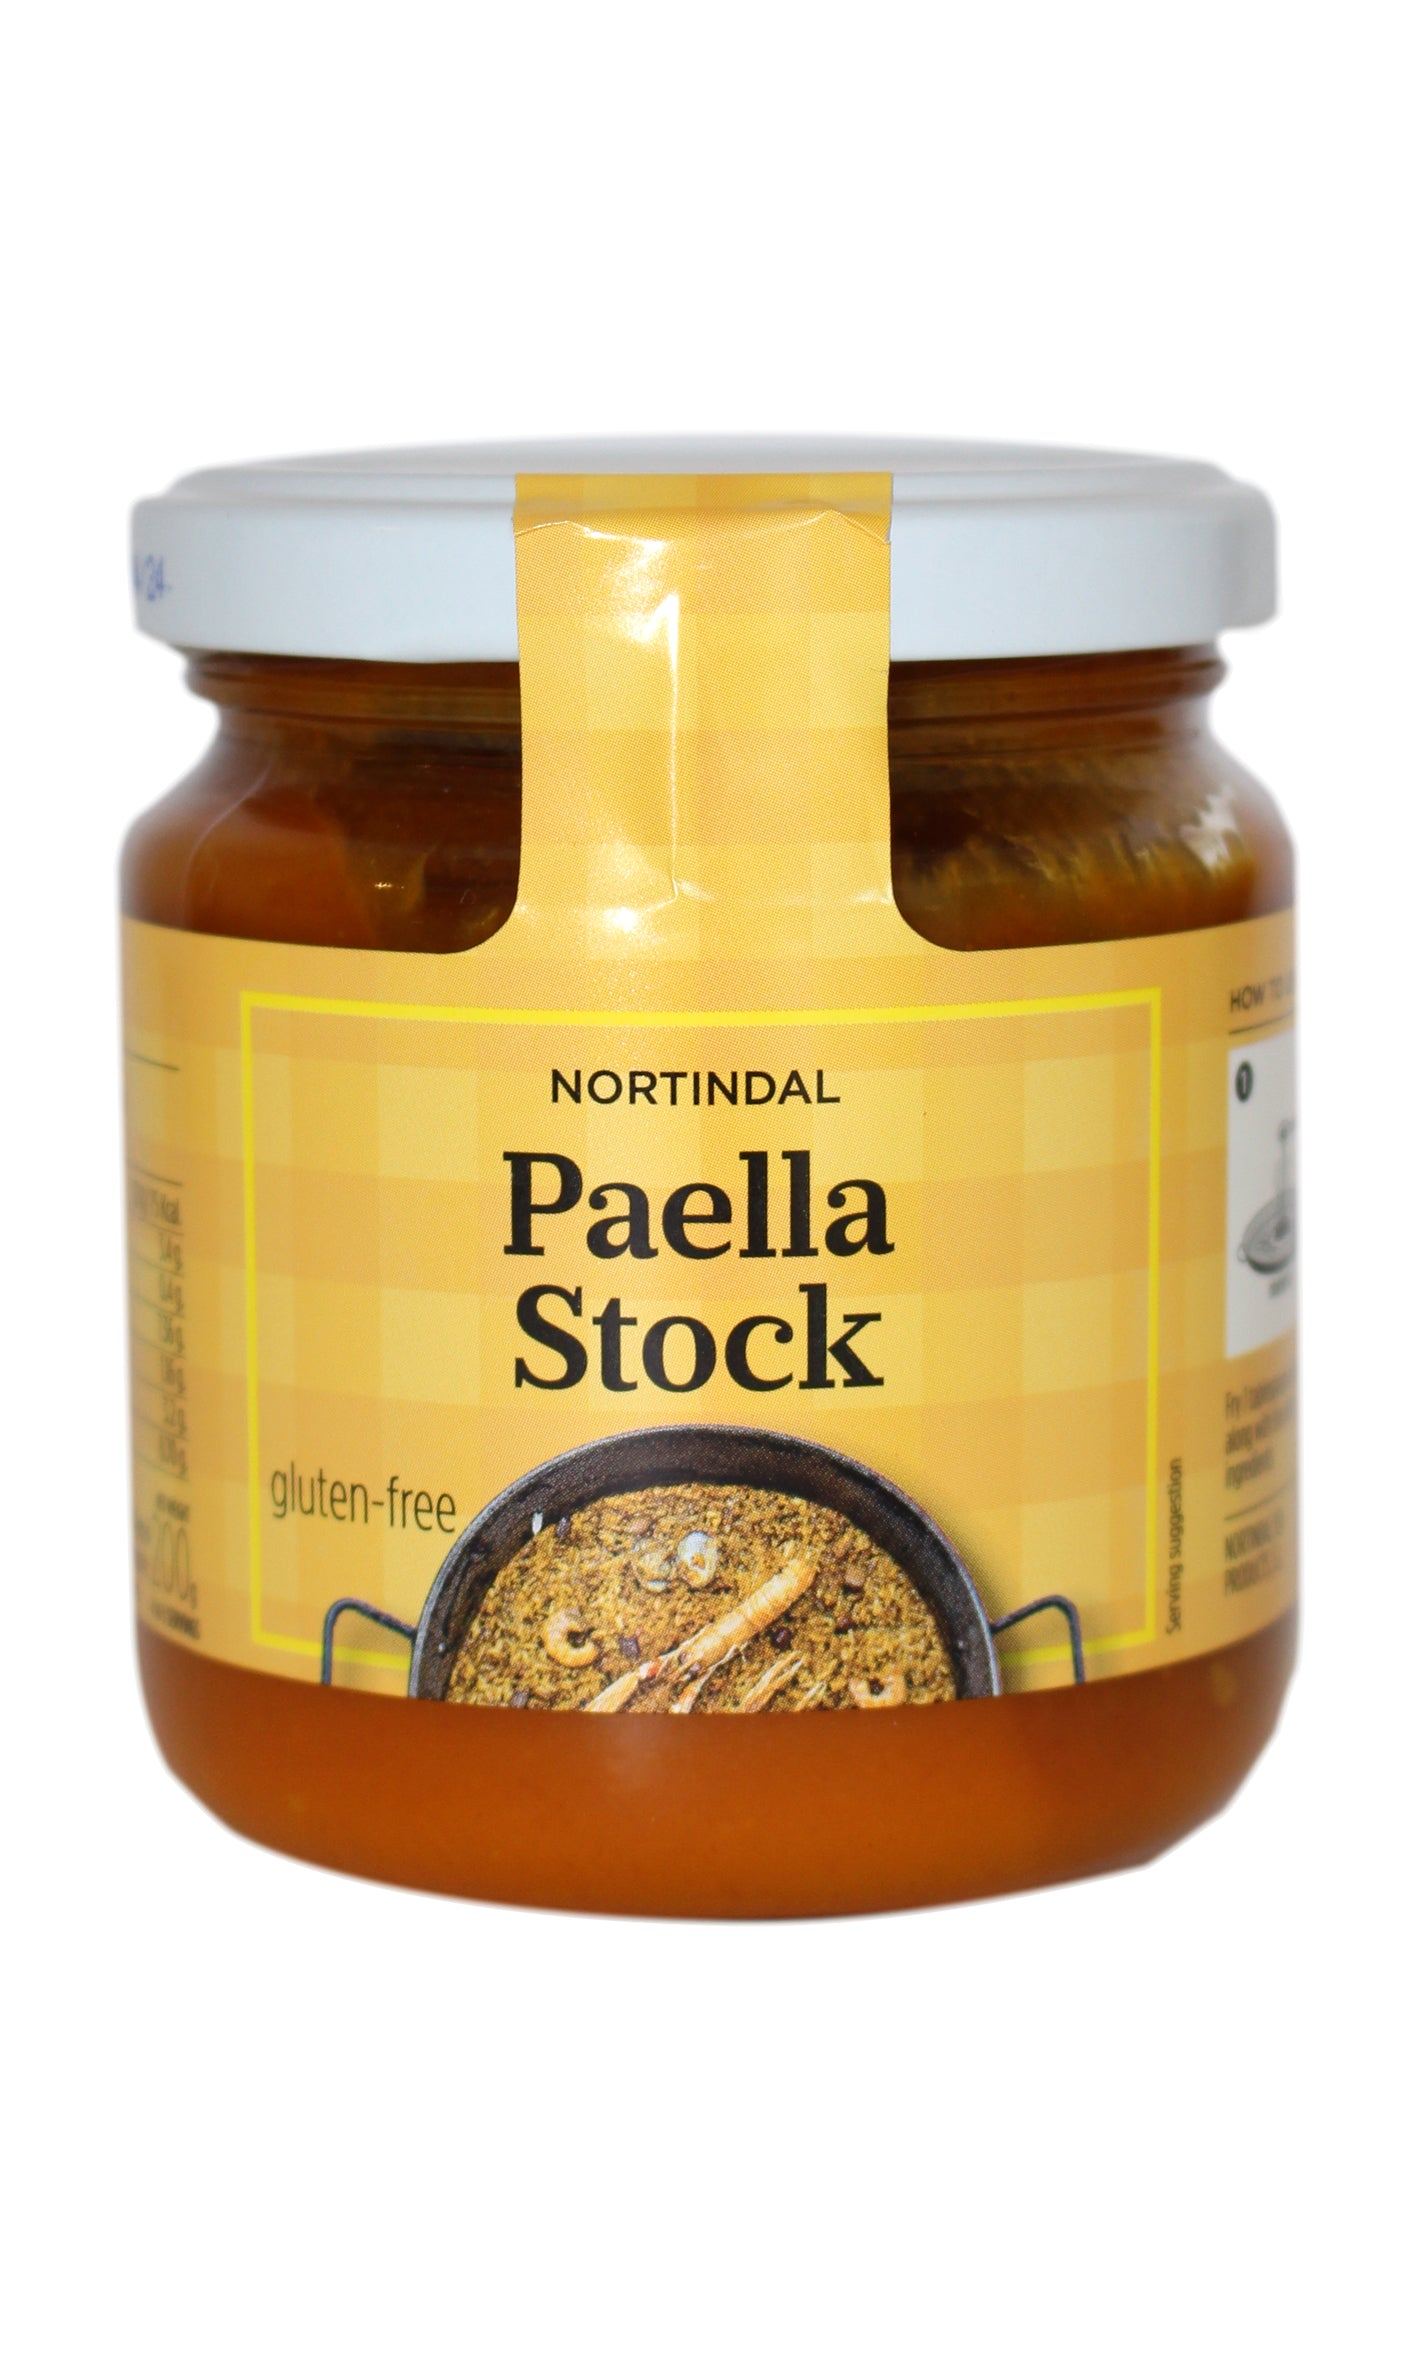 Nortindal: Paella stock - 200g